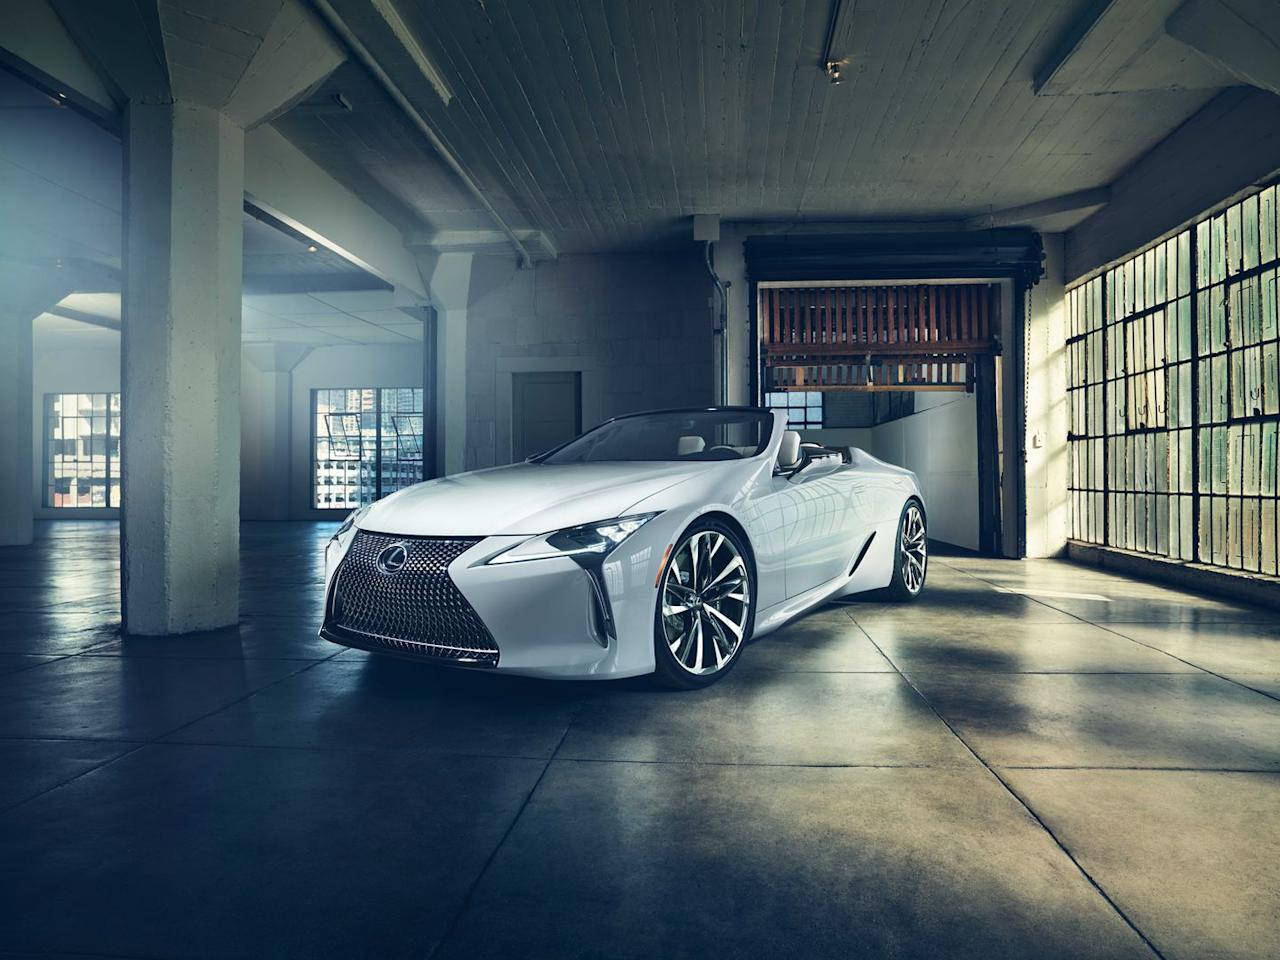 "<p>What's there to think about, Lexus? <a rel=""nofollow"" href=""https://www.caranddriver.com/lexus/lc"">The slinky LC coupe</a> that's been on sale since 2017 still looks like a concept car that Lexus accidentally shipped to dealerships.</p>"